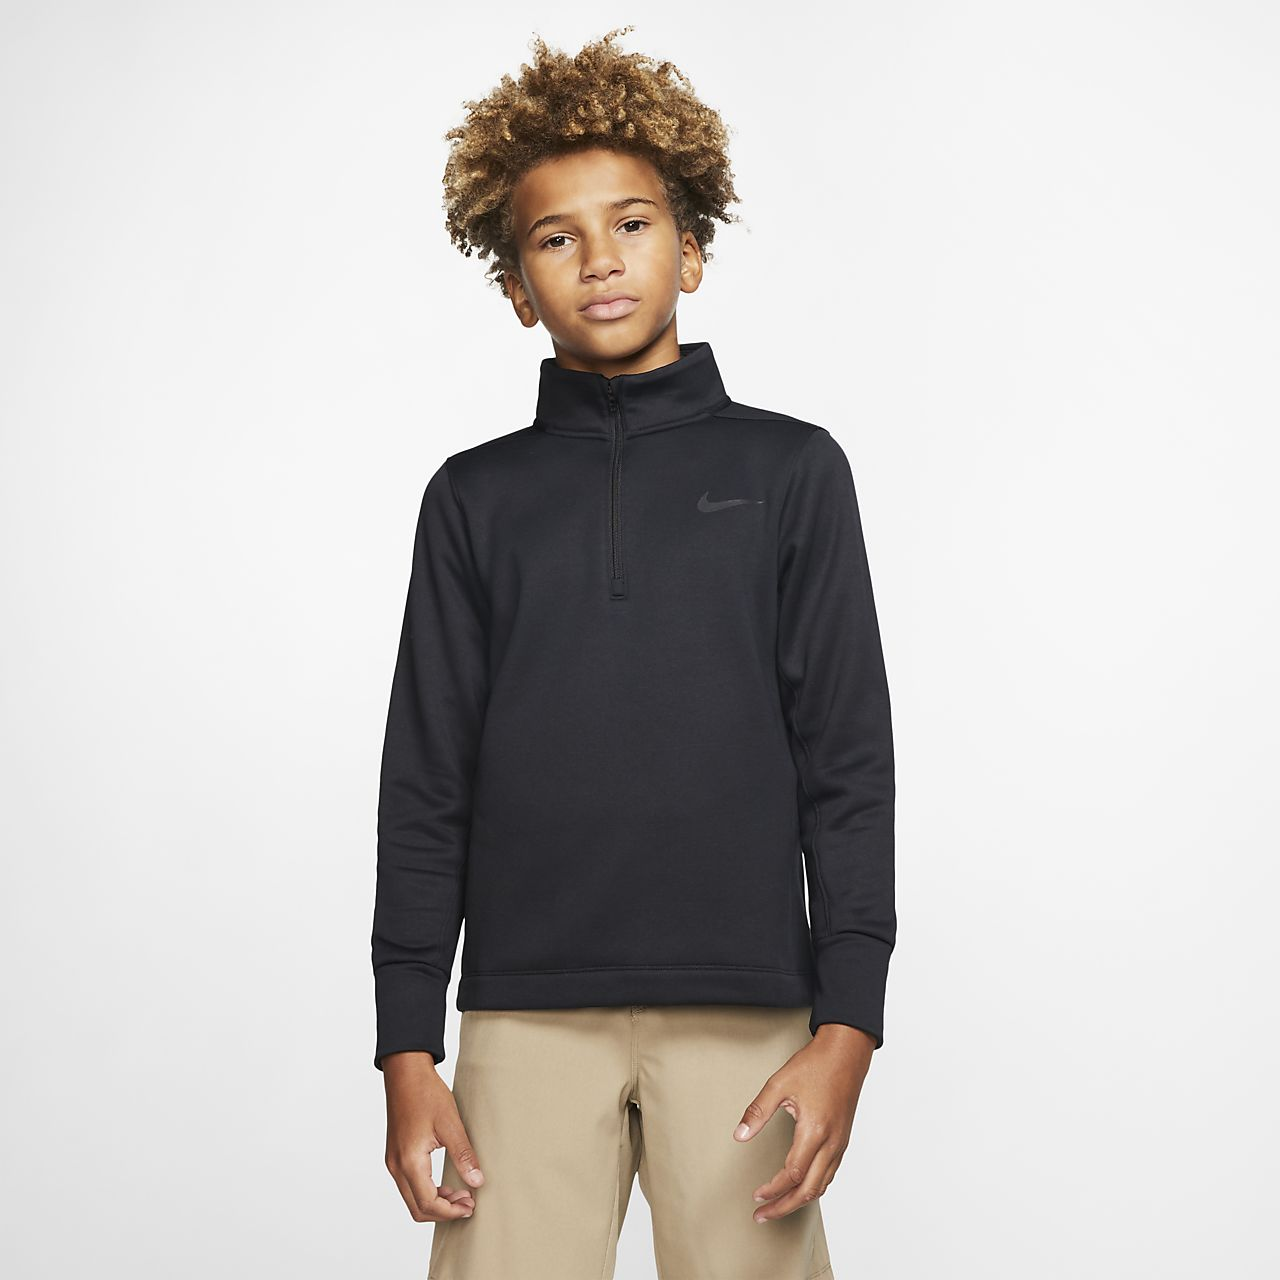 56c68b557459e5 Nike Dri-FIT Therma Big Kids  (Boys ) Half-Zip Golf Top. Nike.com